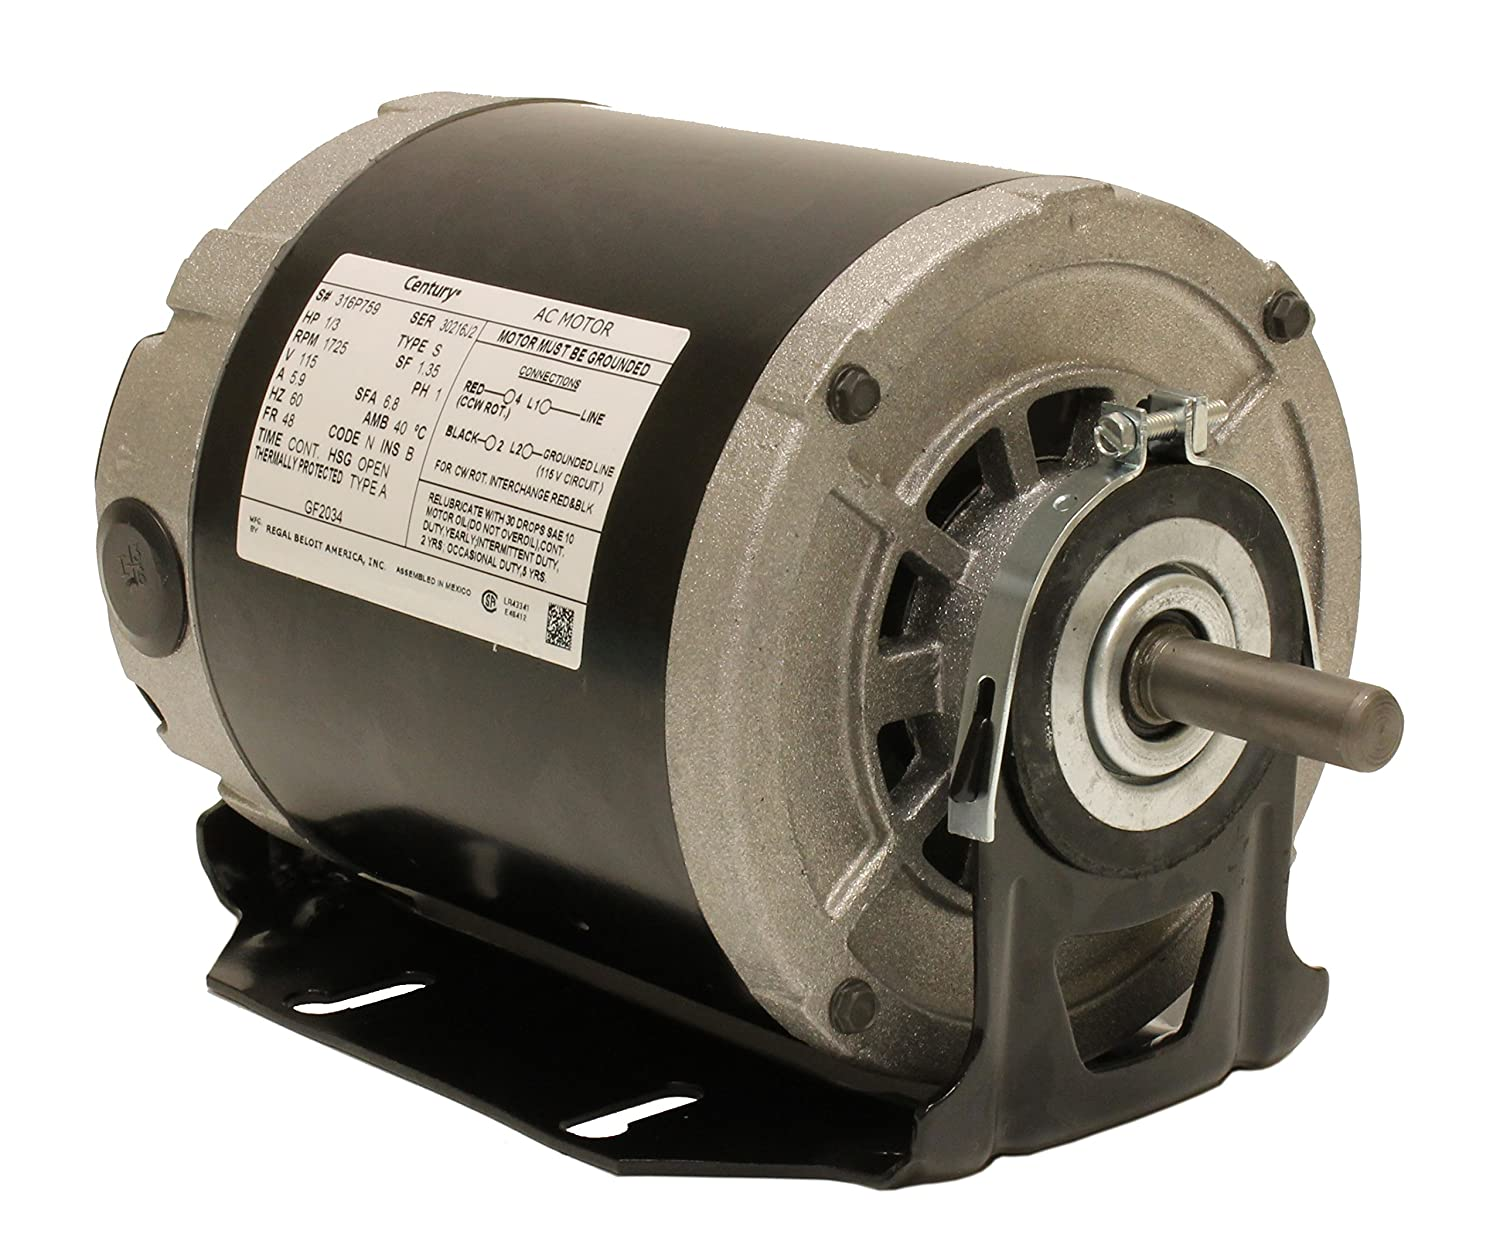 a o  smith gf2034 century resilient base split phase electric motor, 115  vac, 6 8 a, 1/3 hp, 1725 rpm